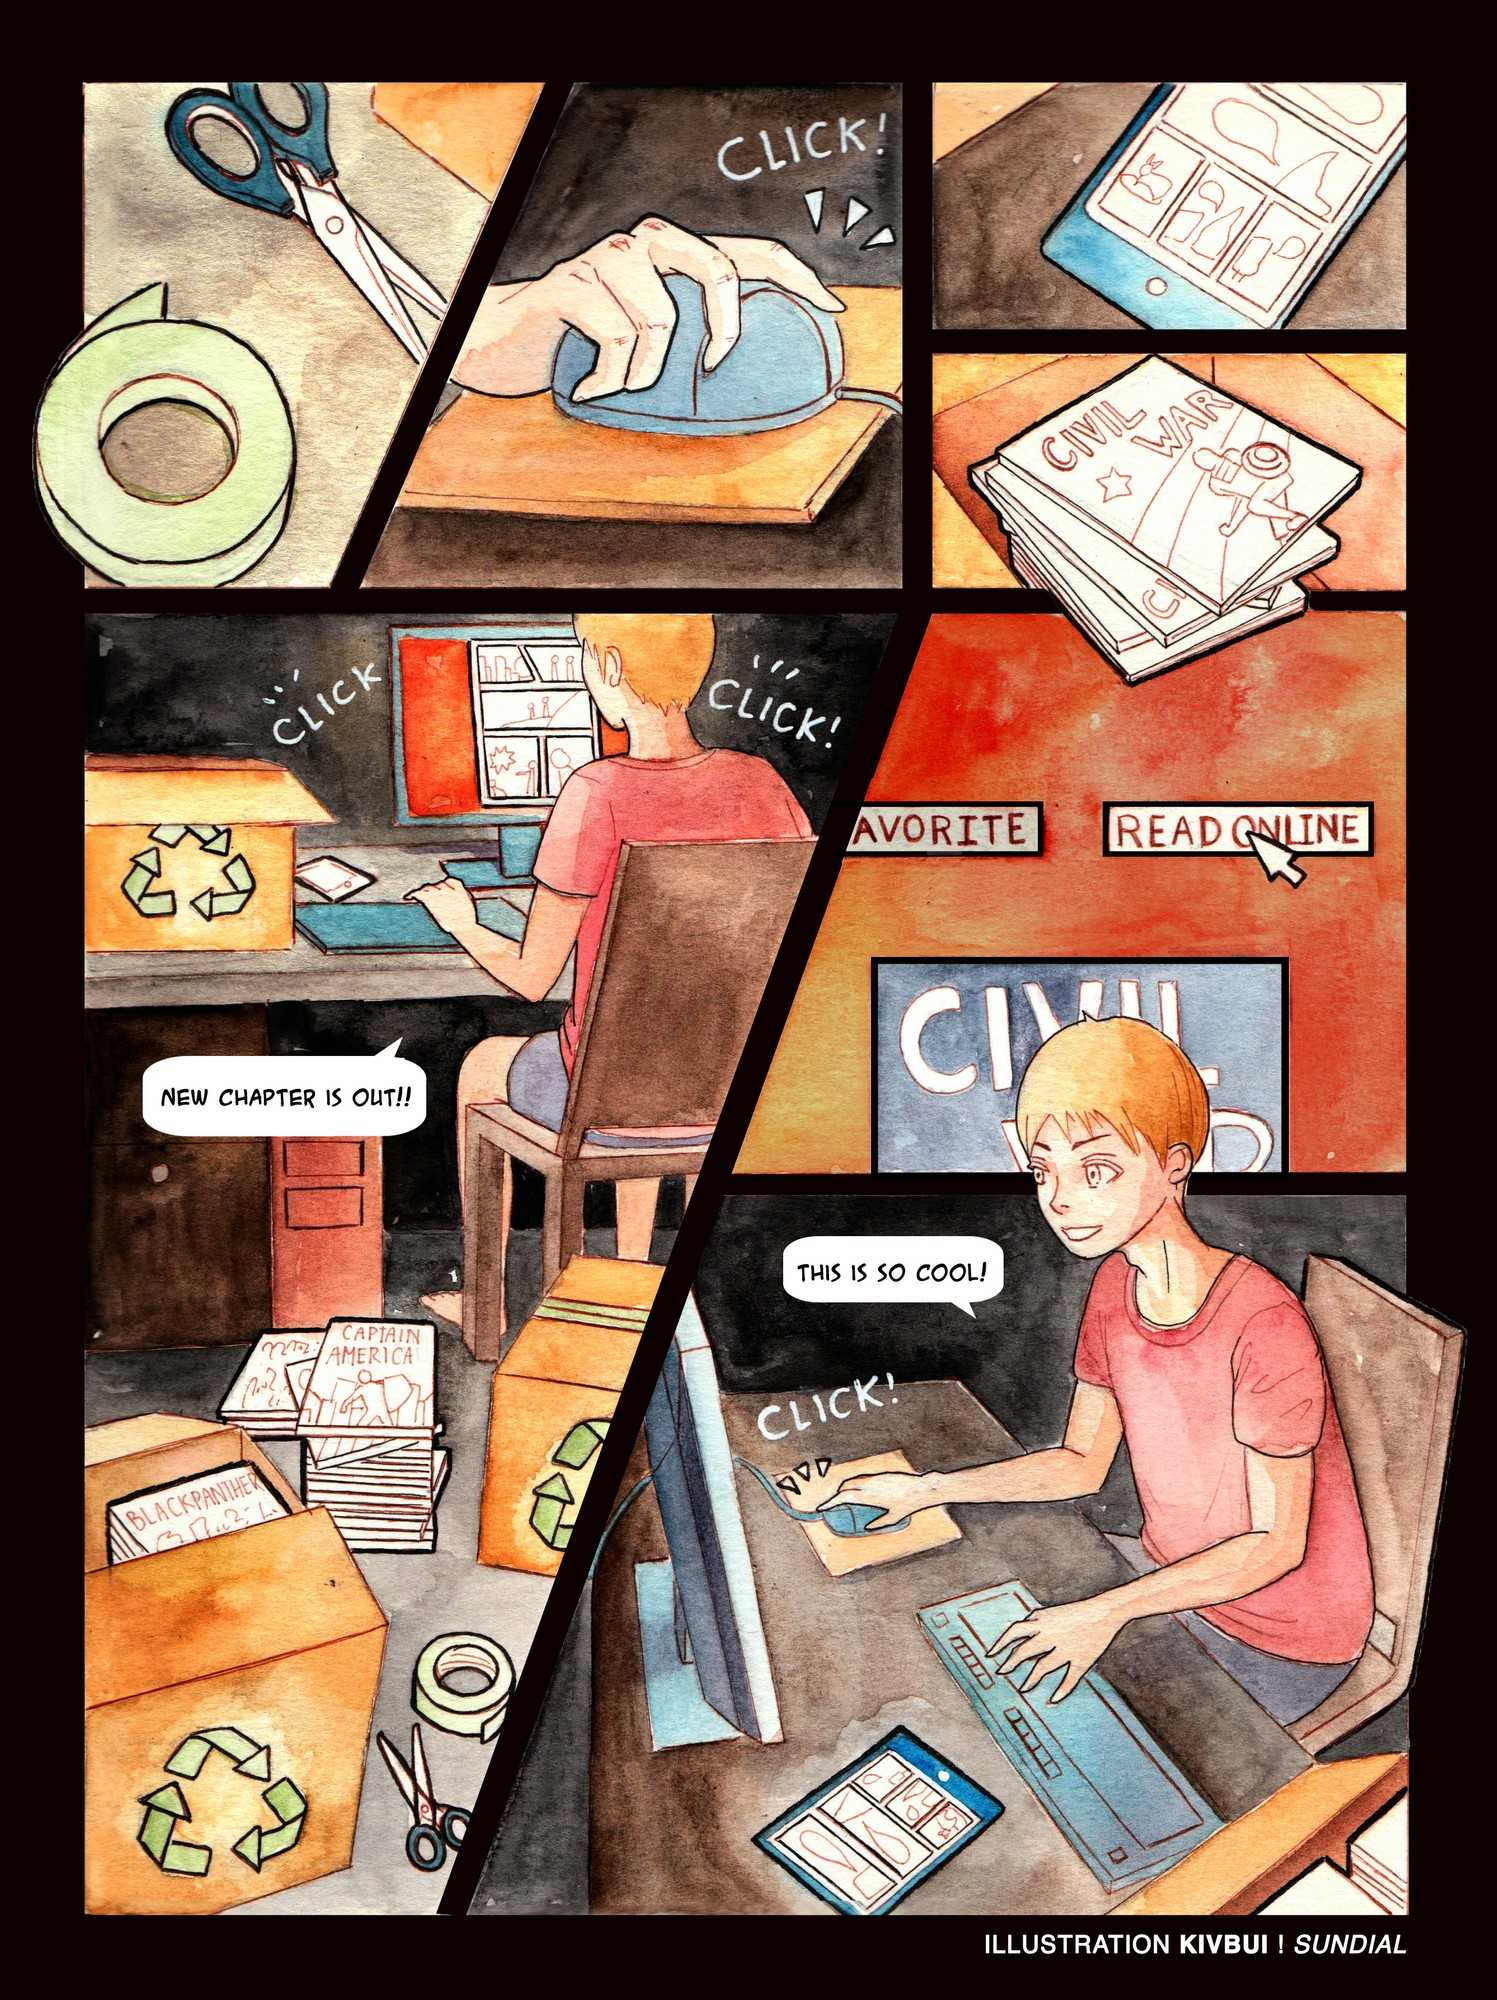 Color printing csun - Print Comics The Sundial